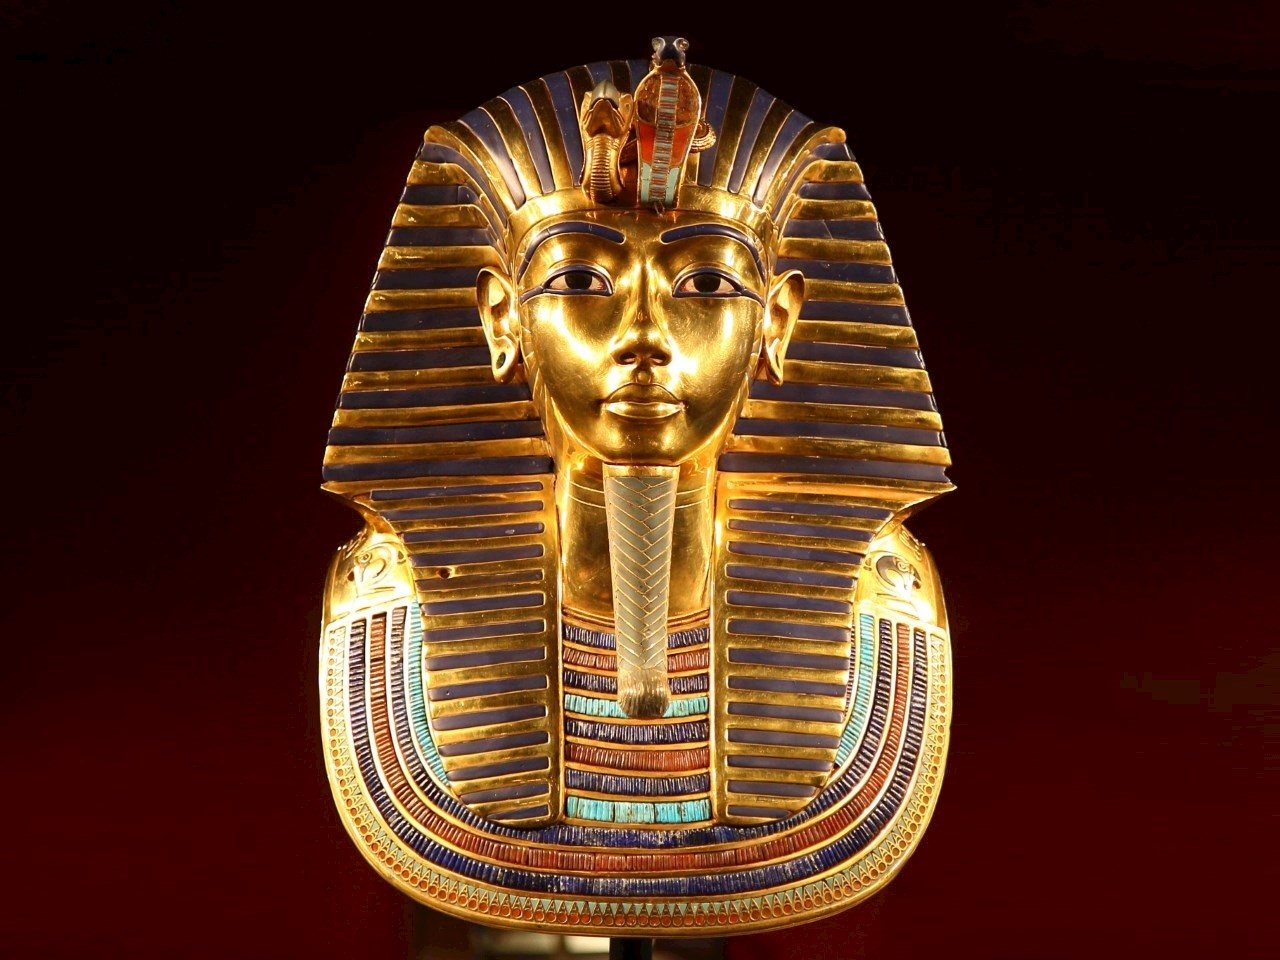 Tutankhamun's golden death mask in the Egyptian Museum